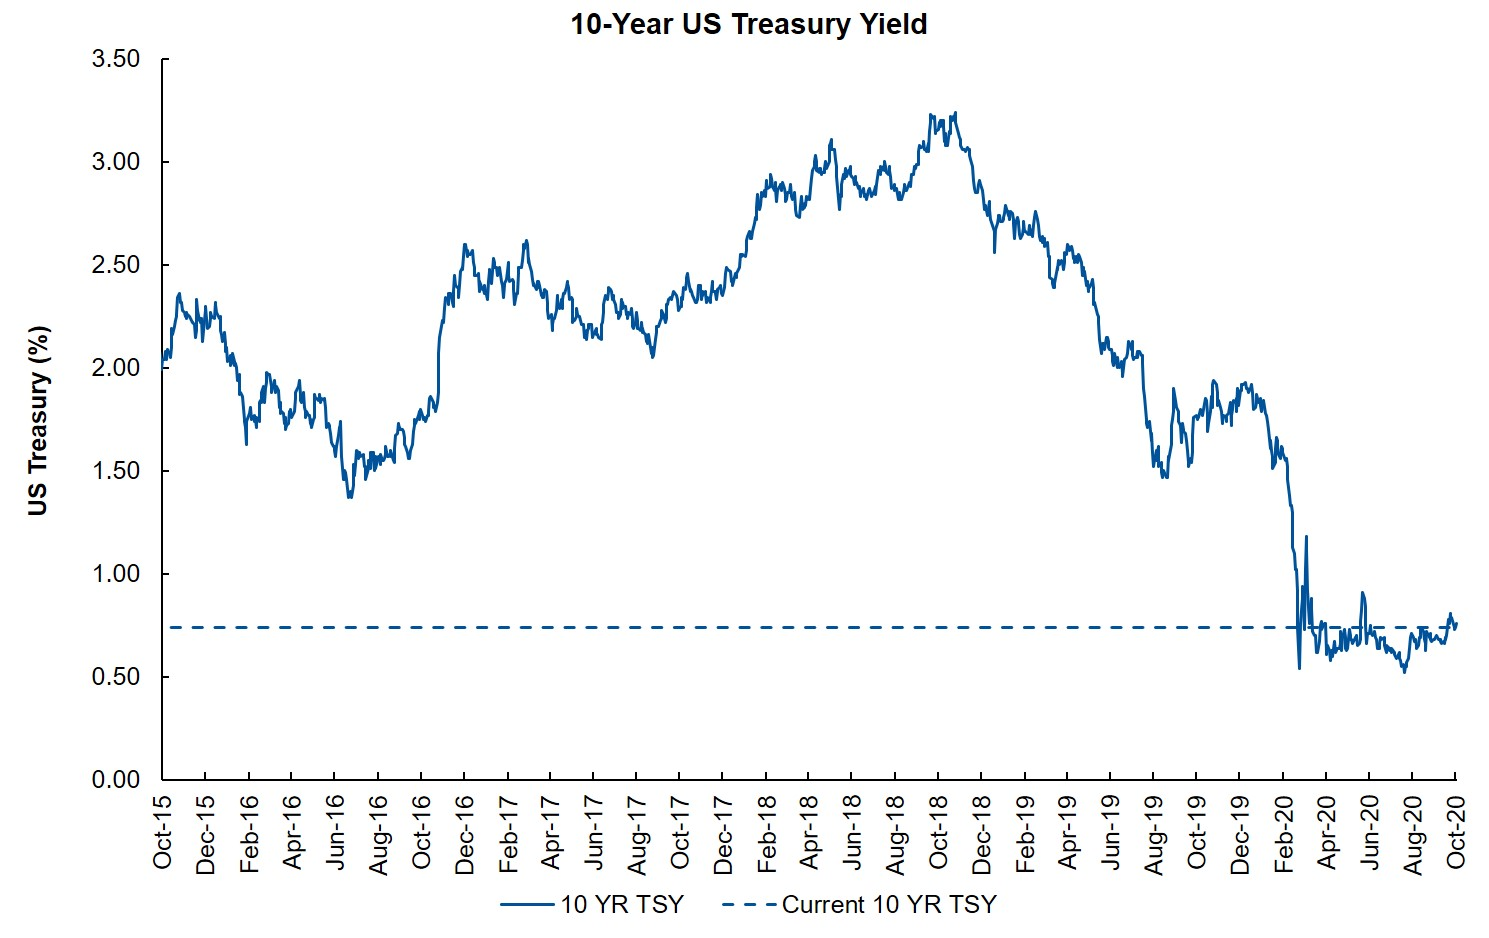 Ten Year Treasury Yield